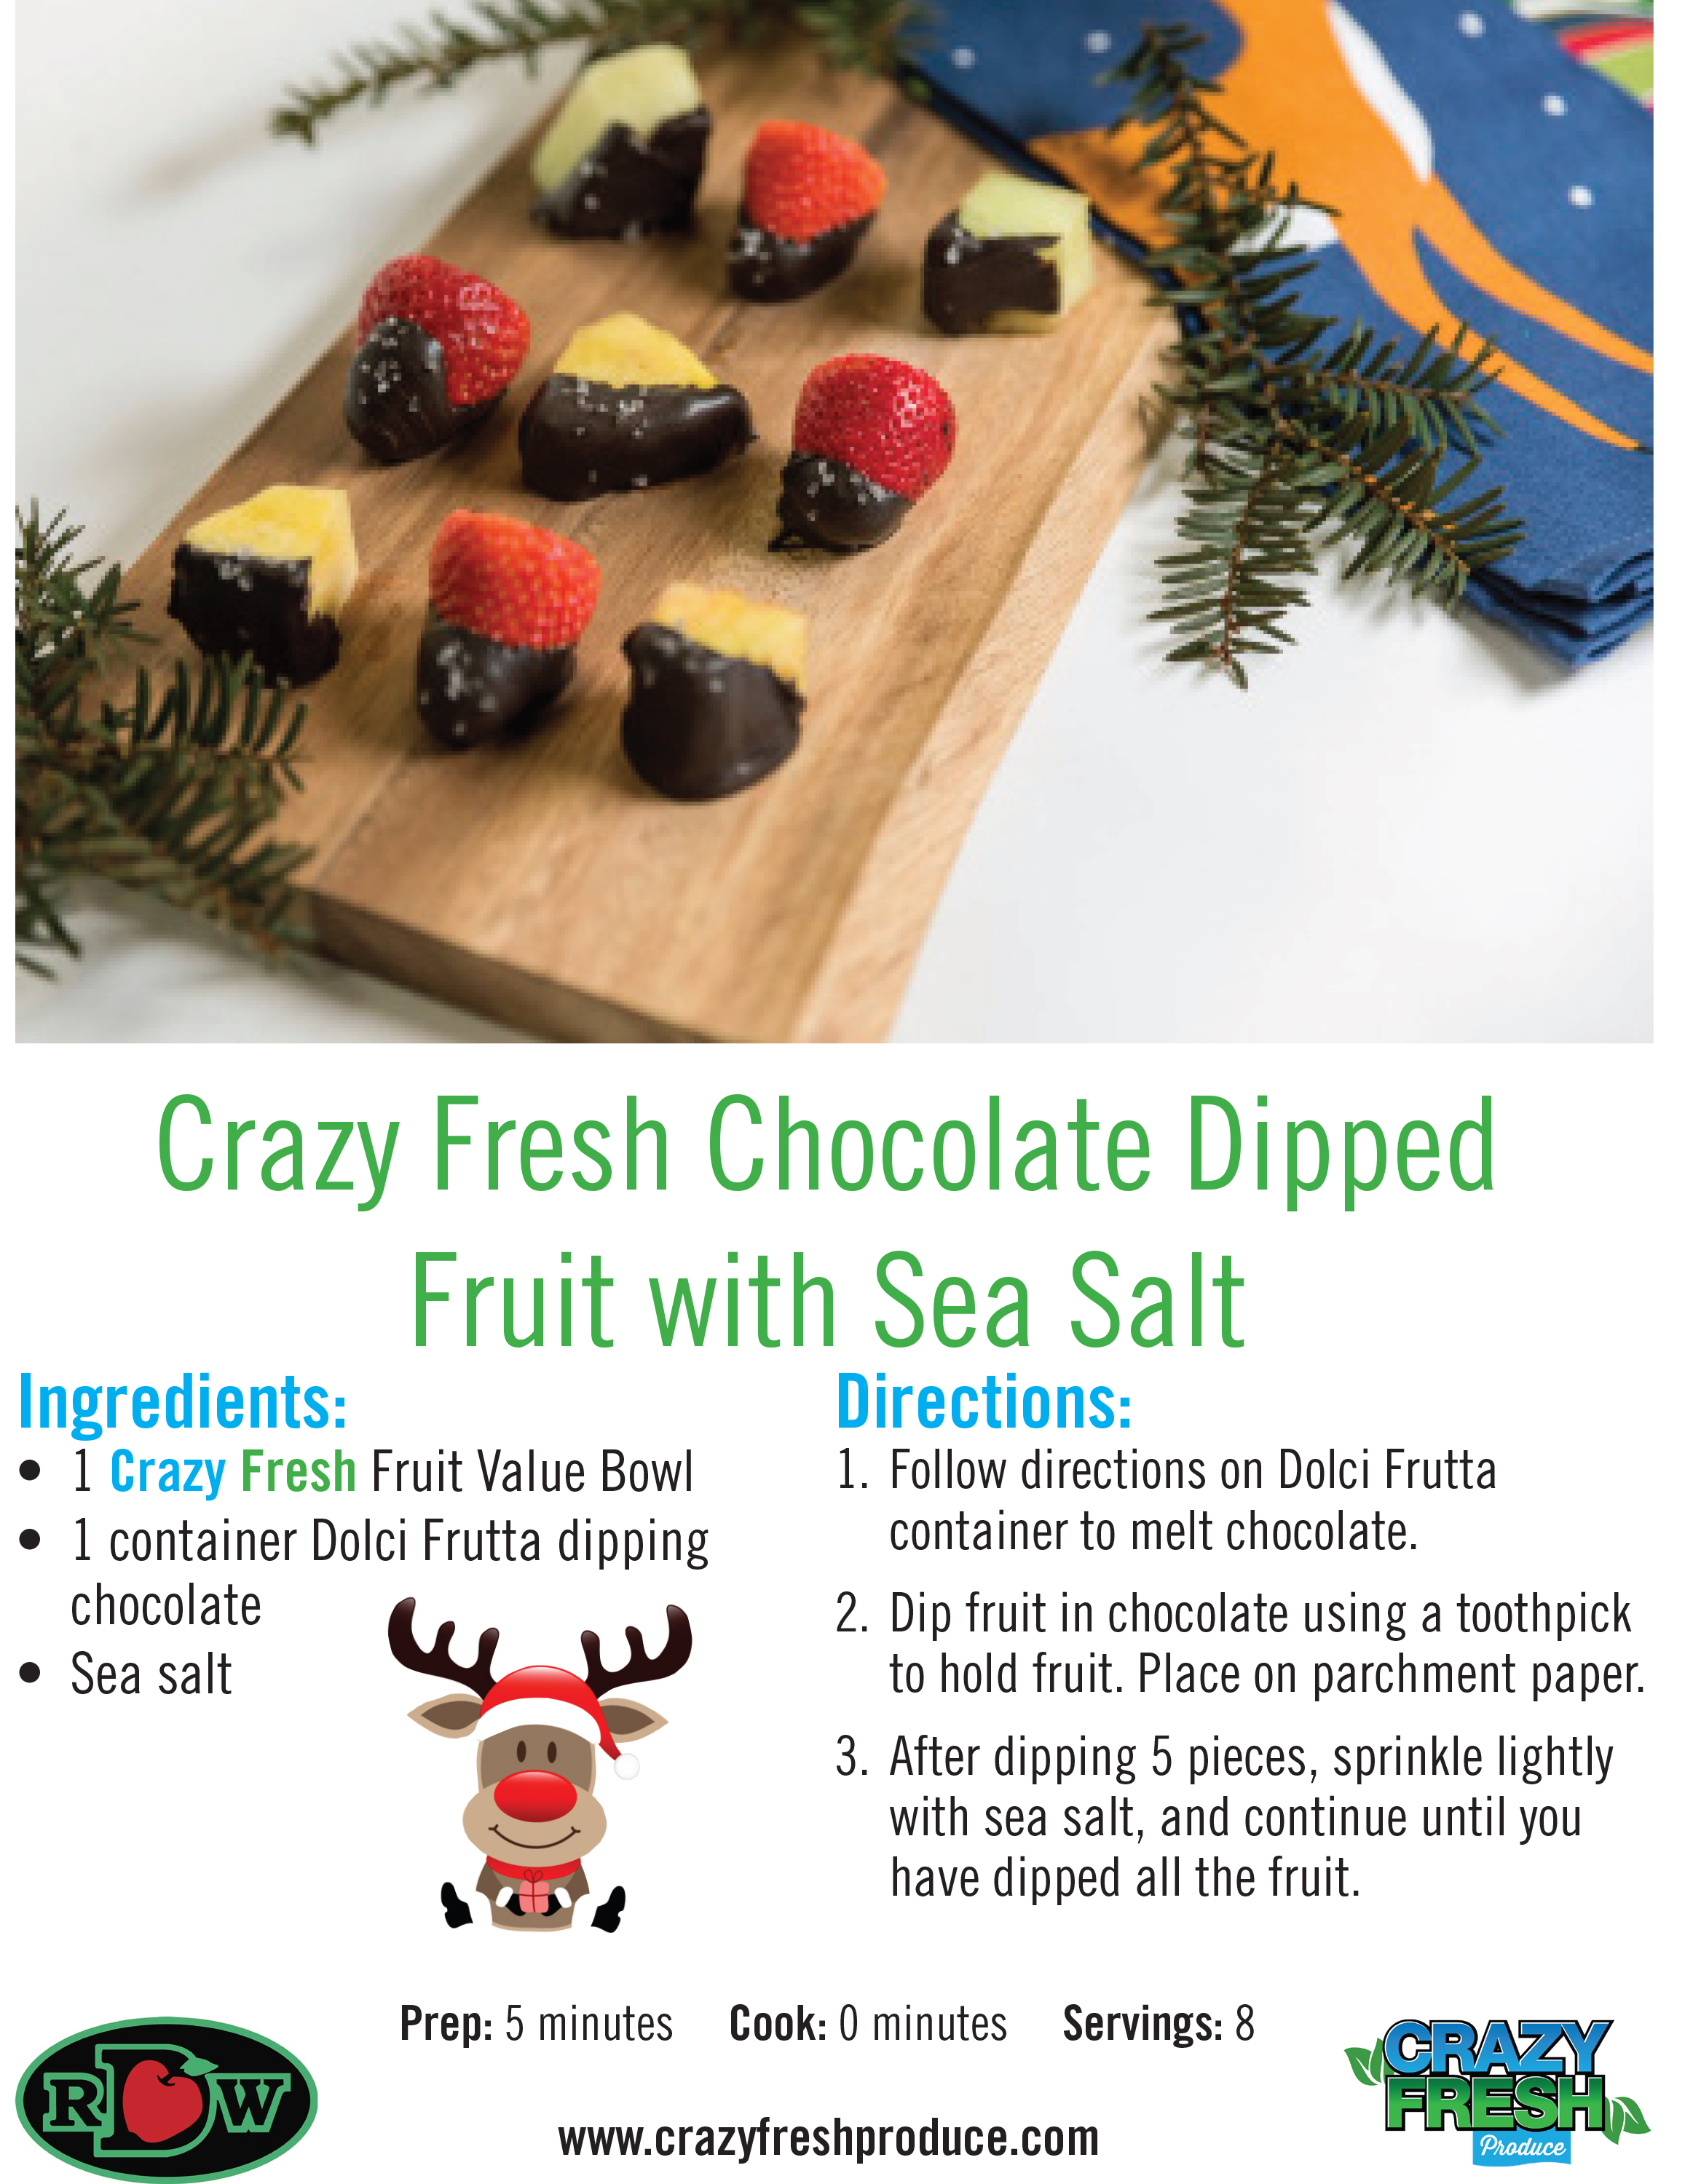 If your kids love fruit and chocolate, then they'll love mixing the two for a festive dessert!